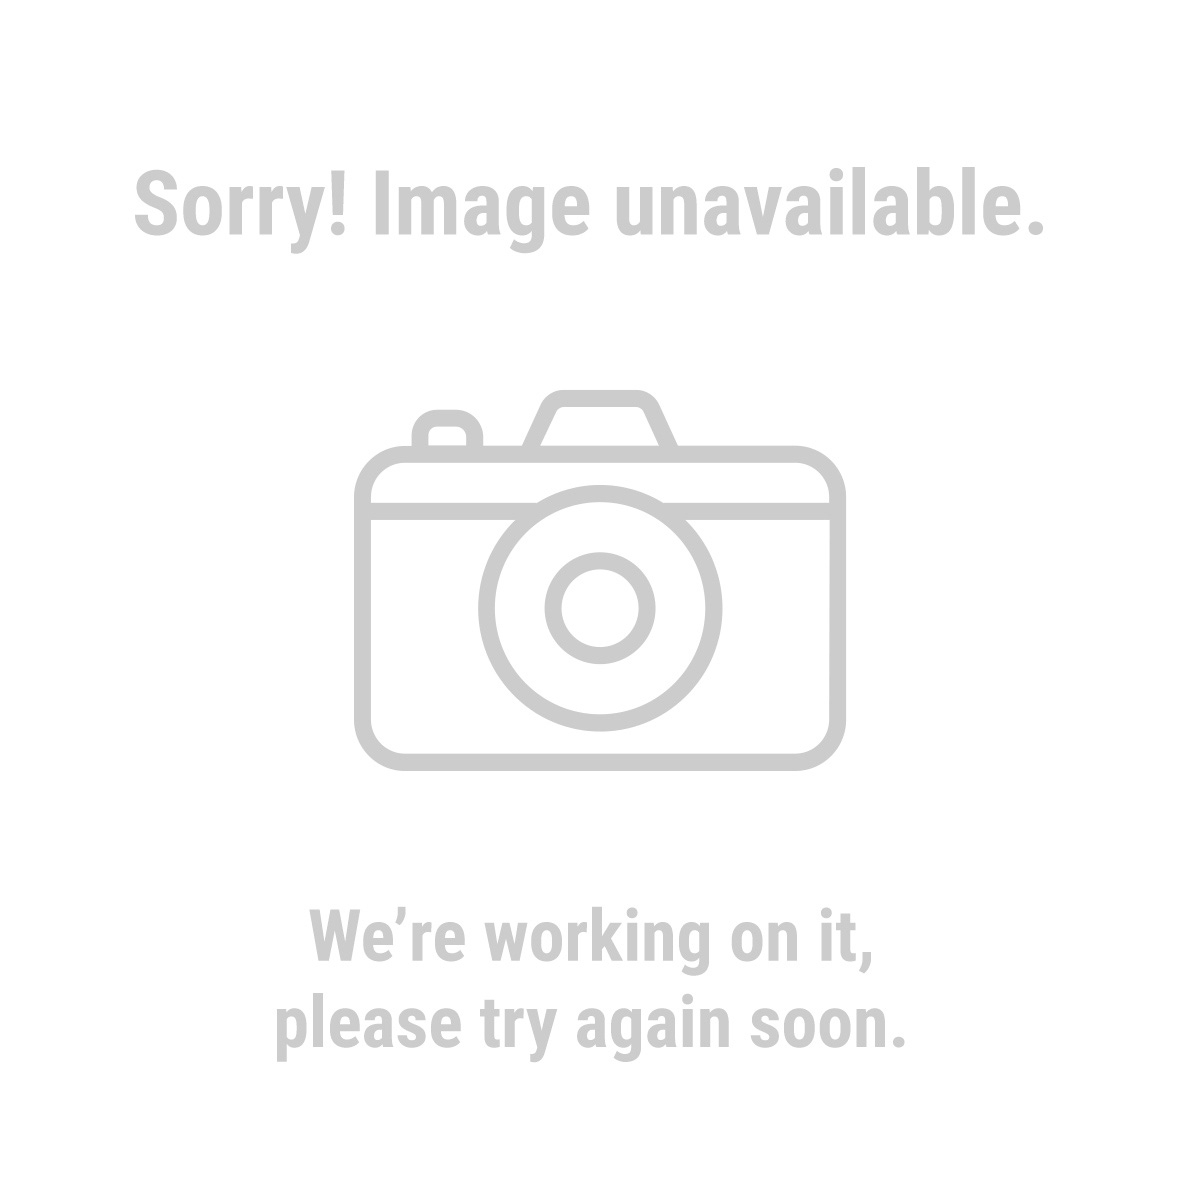 Pittsburgh 62171 36 Pc SAE & Metric Long Reach Hex Key Set